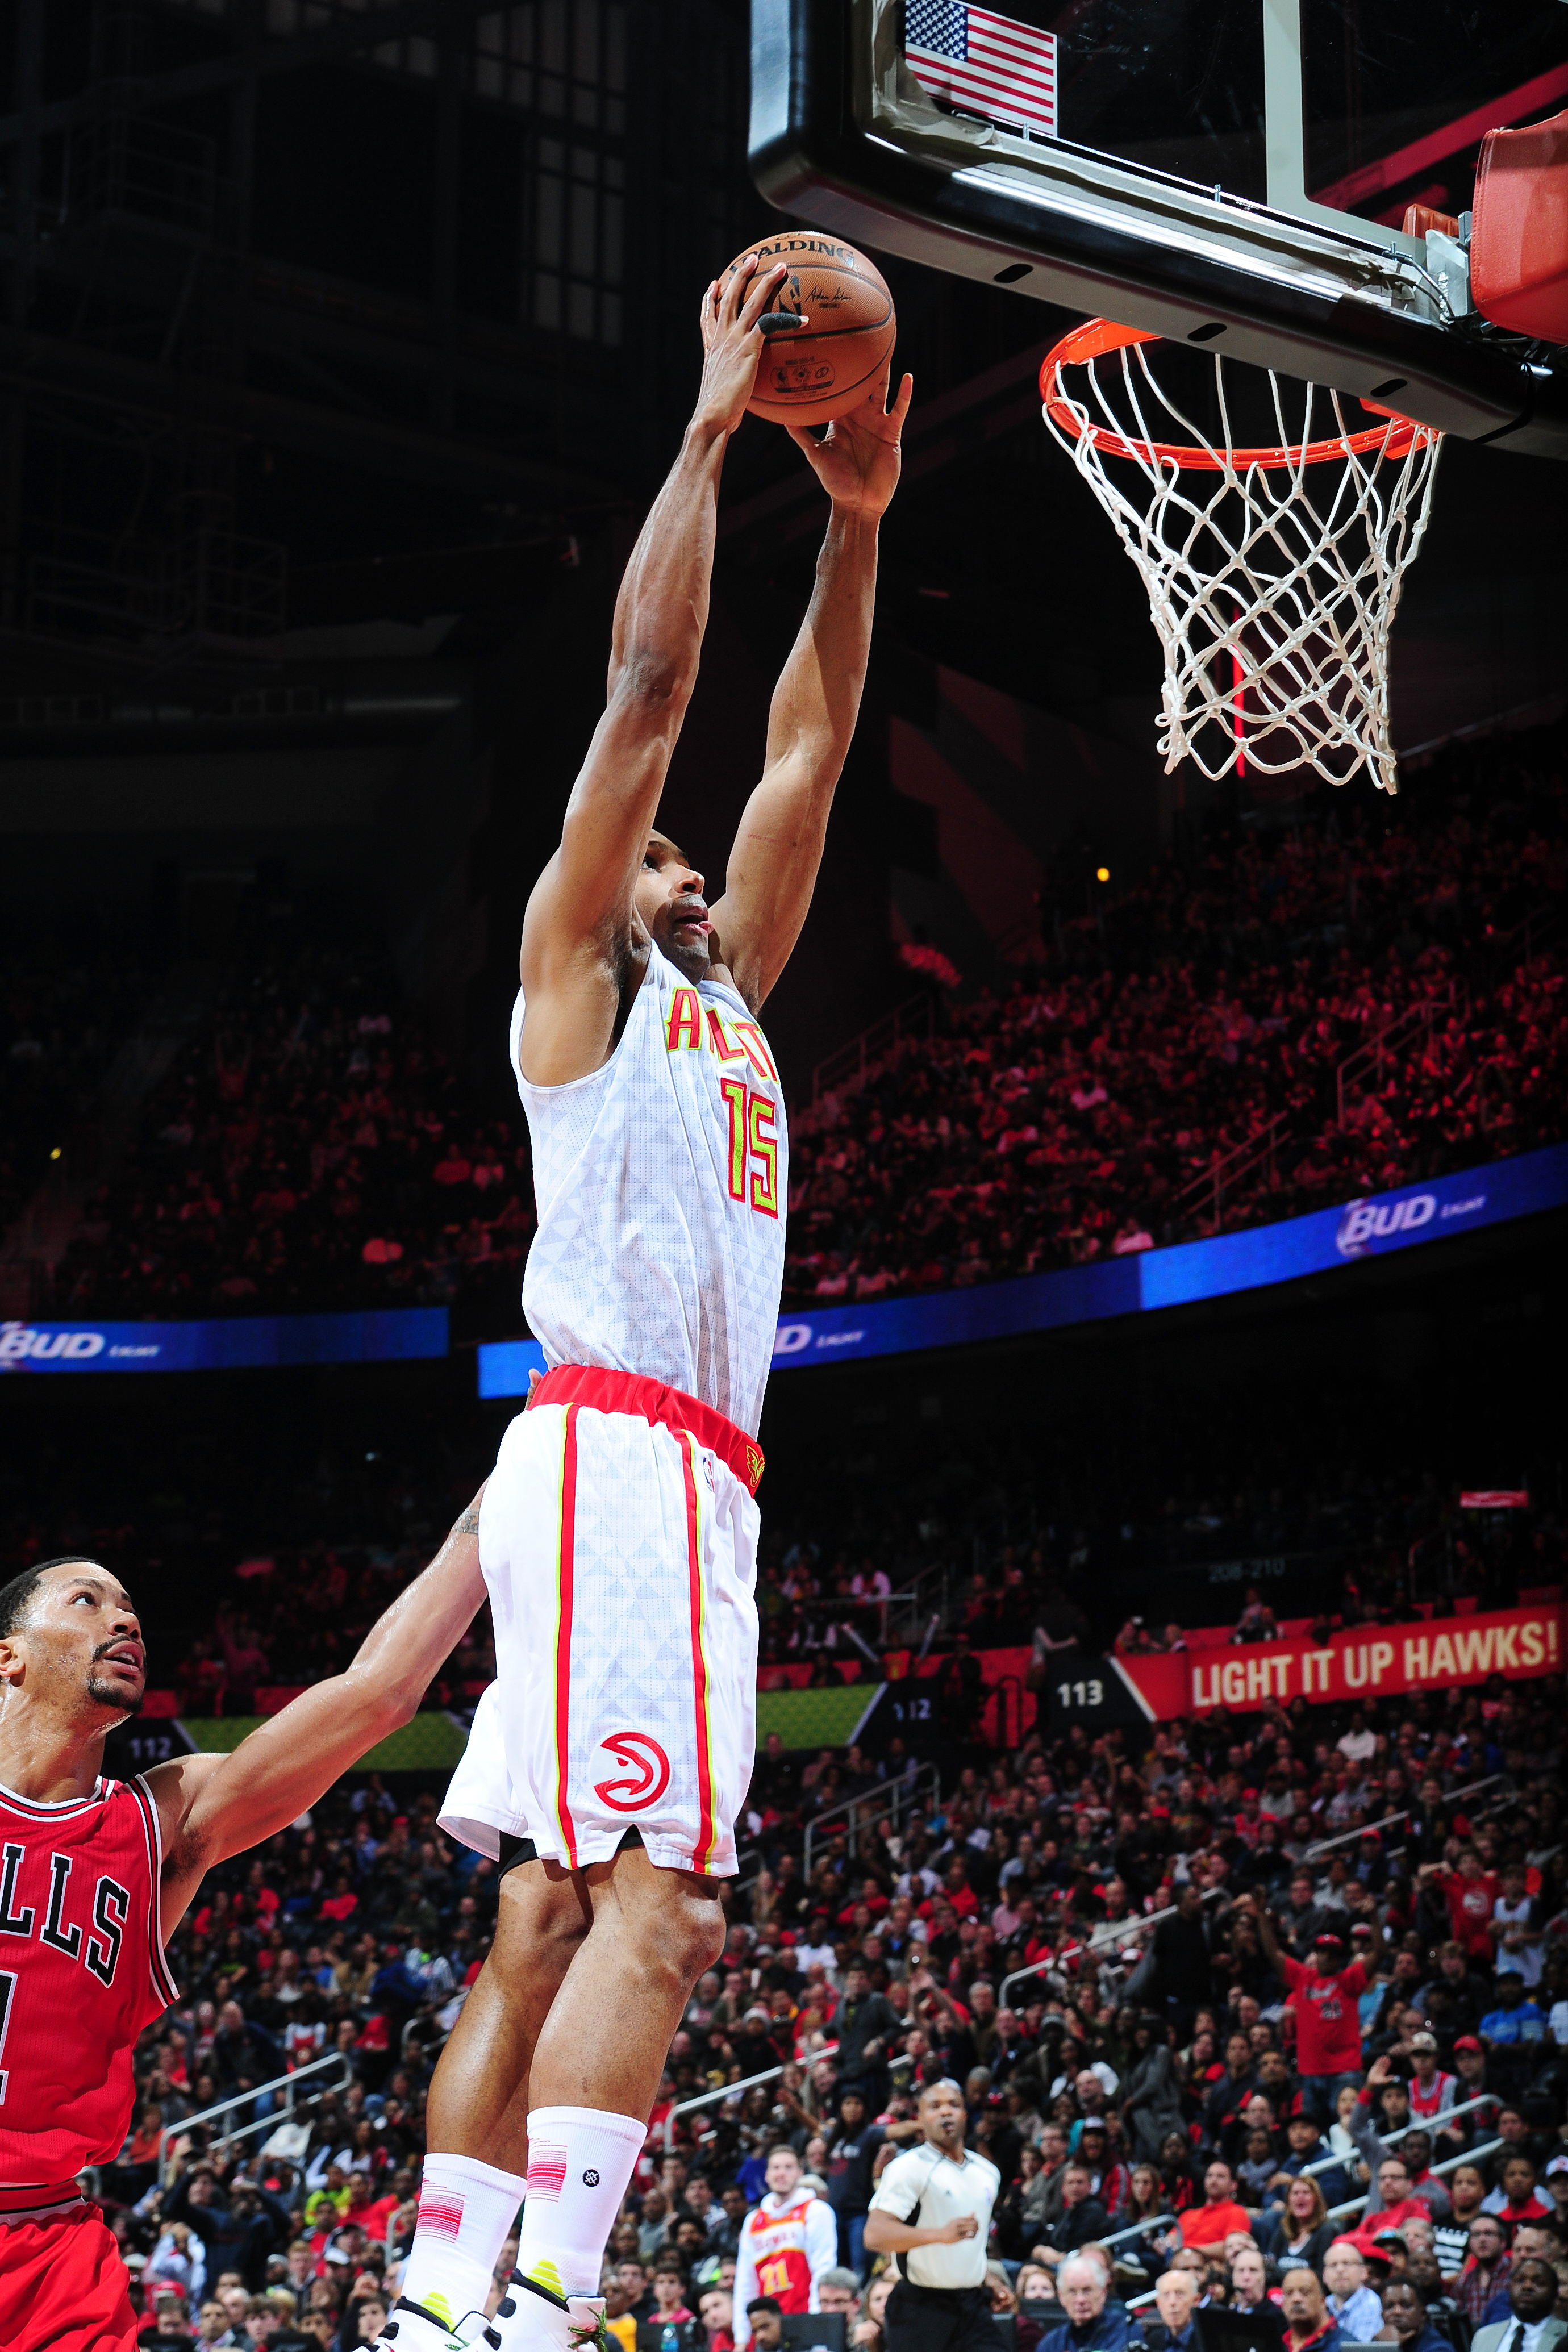 ATLANTA, GEORGIA - JANUARY 9: Al Horford #15 of the Atlanta Hawks goes for the dunk during the game against the Chicago Bulls on January 9, 2016 at Philips Center in Atlanta, Georgia.  (Photo by Scott Cunningham/NBAE via Getty Images)